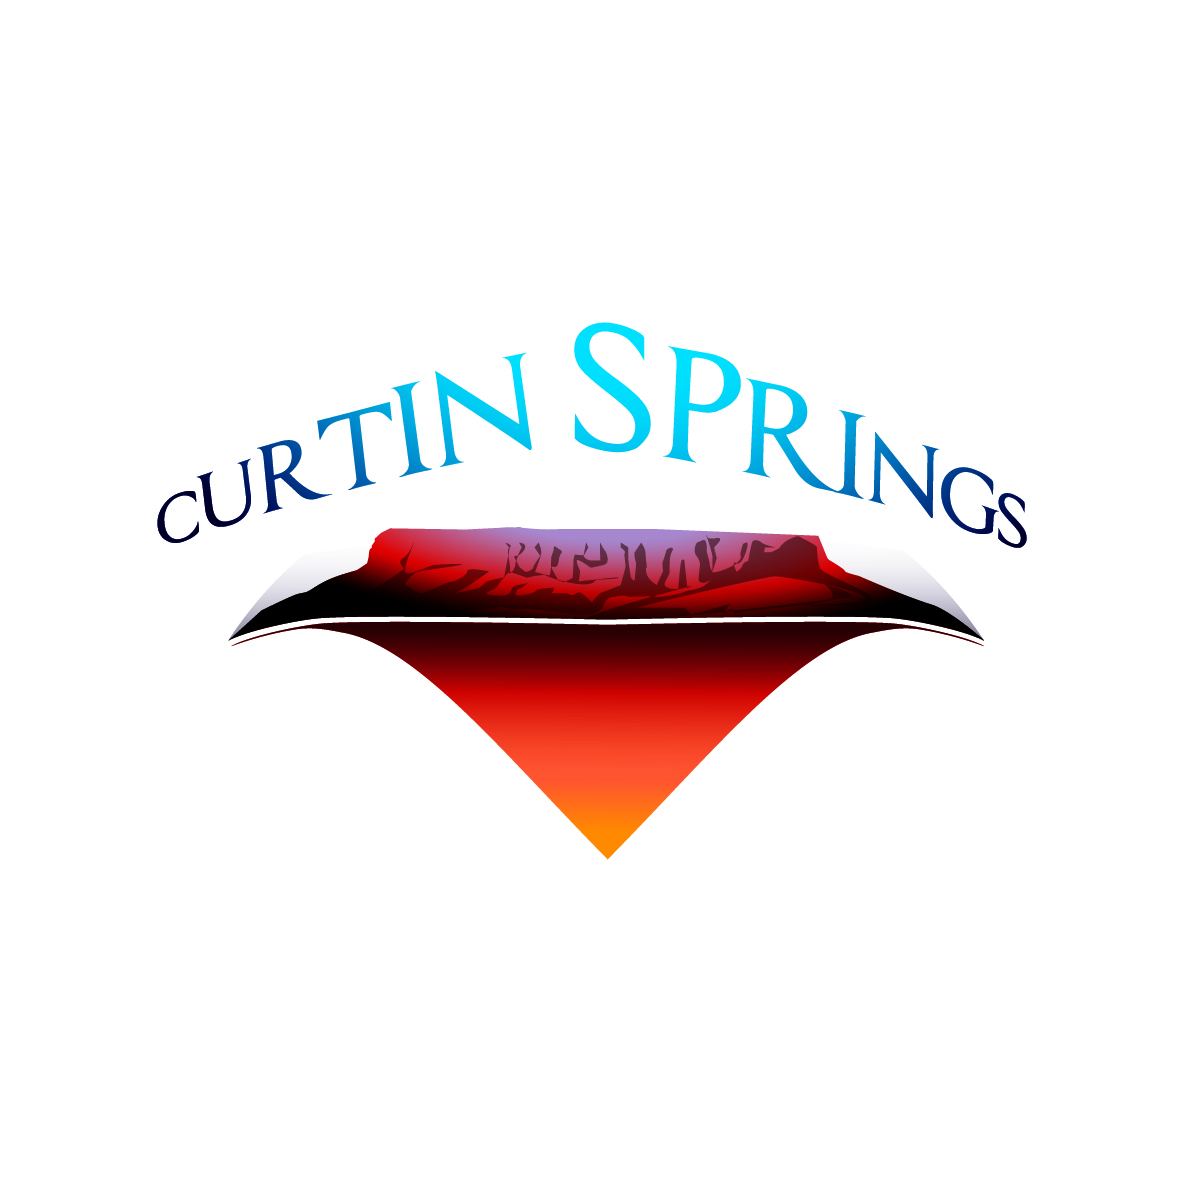 Curtin Springs Station